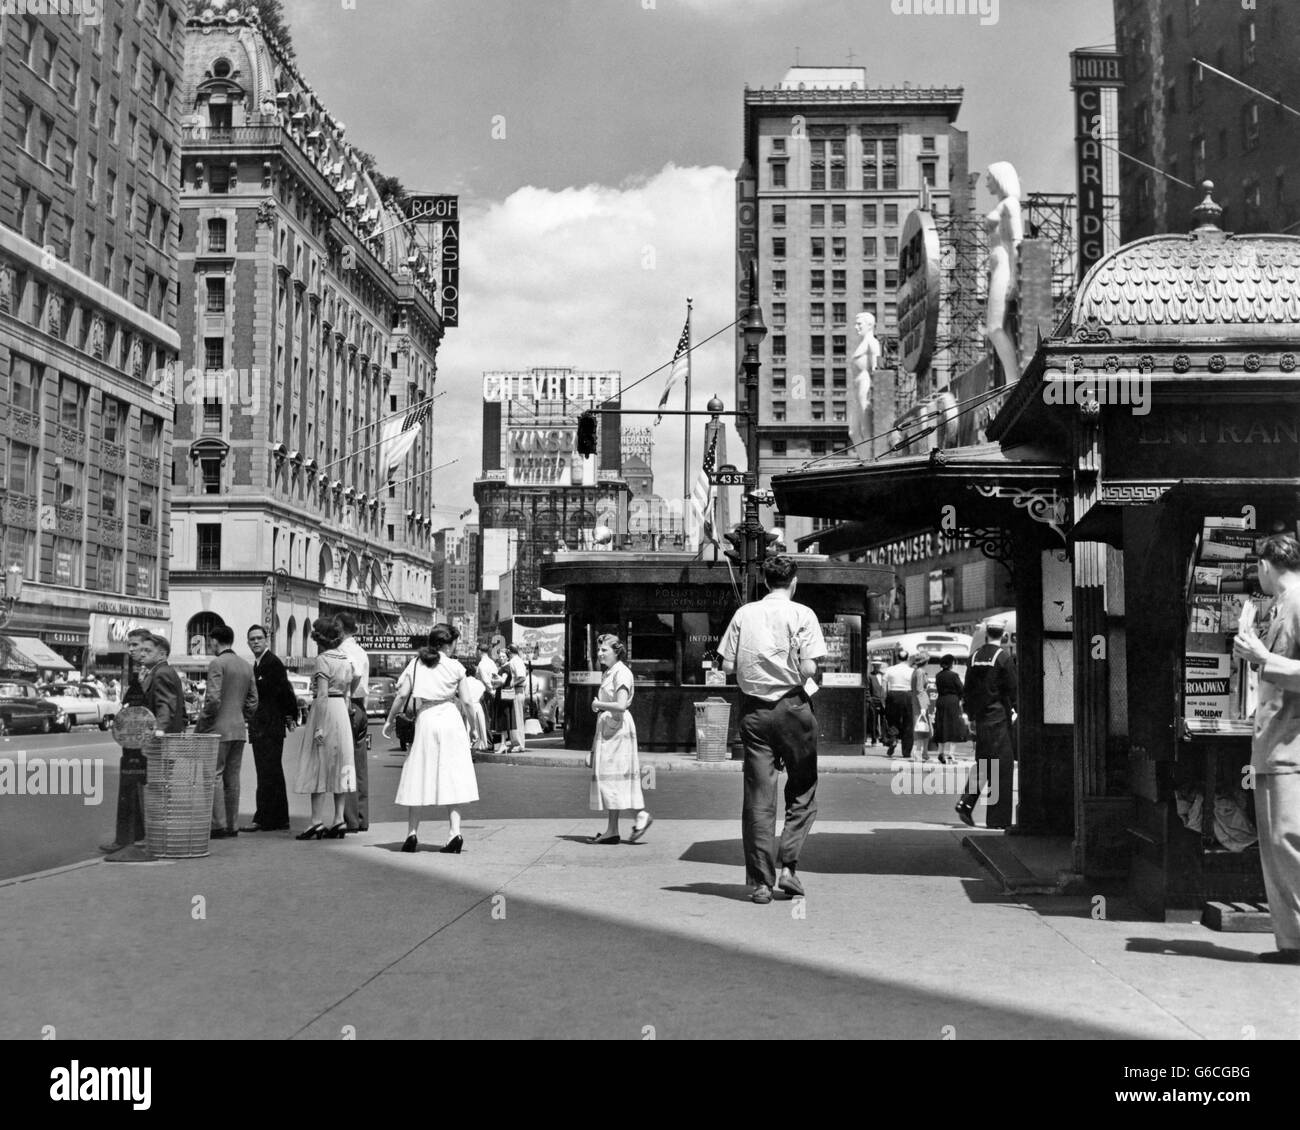 18 And Older Hotels In New York: 1950s NEW YORK CITY TIMES SQUARE WEST 43RD STREET LOOKING